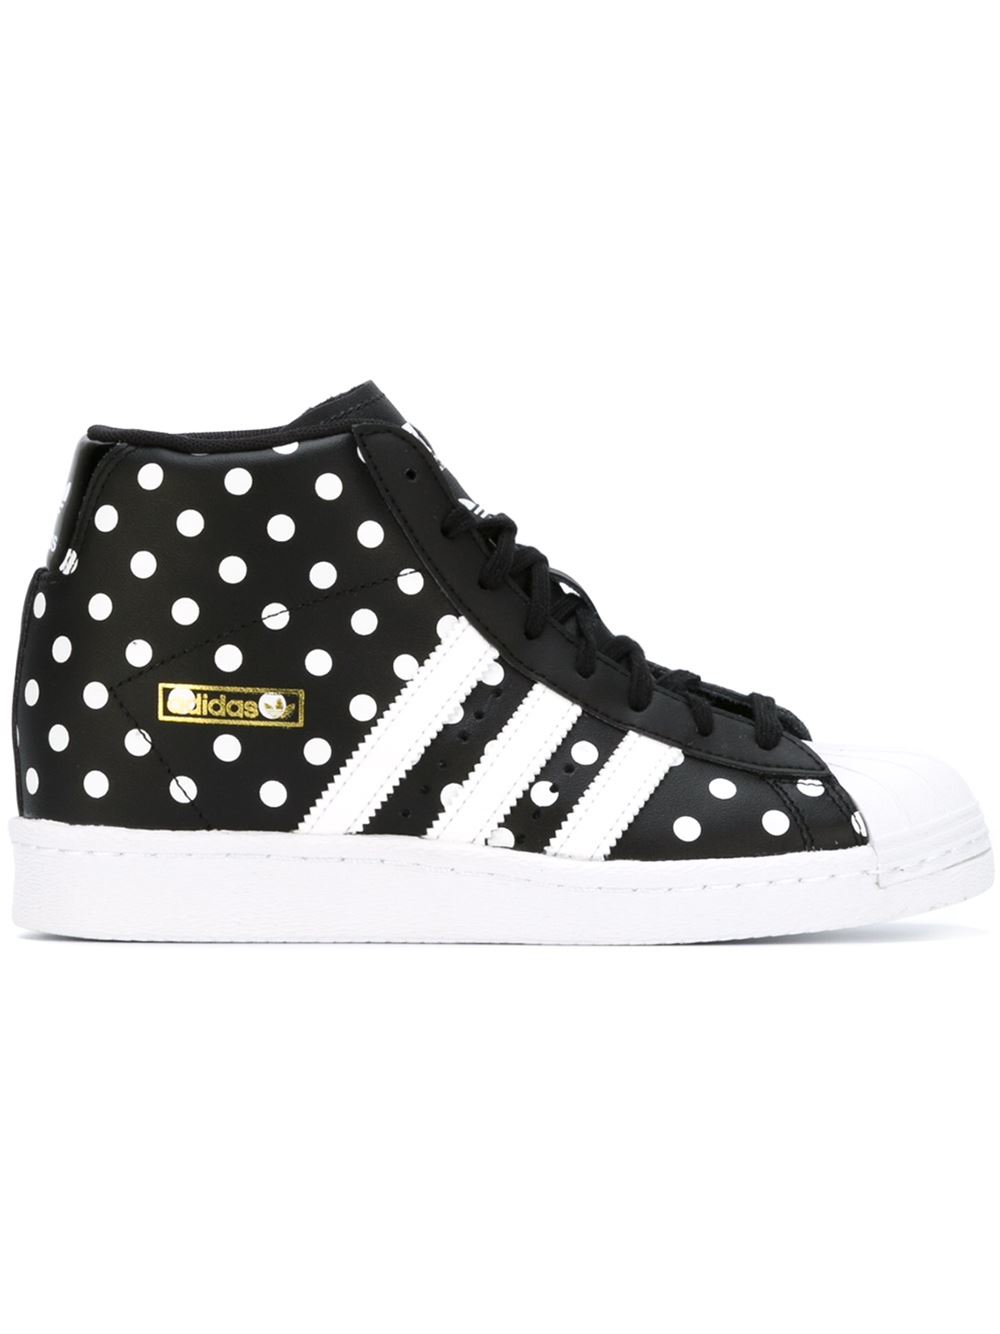 adidas  superstar Up  Hi-top Sneakers in Black - Lyst 7539894a3